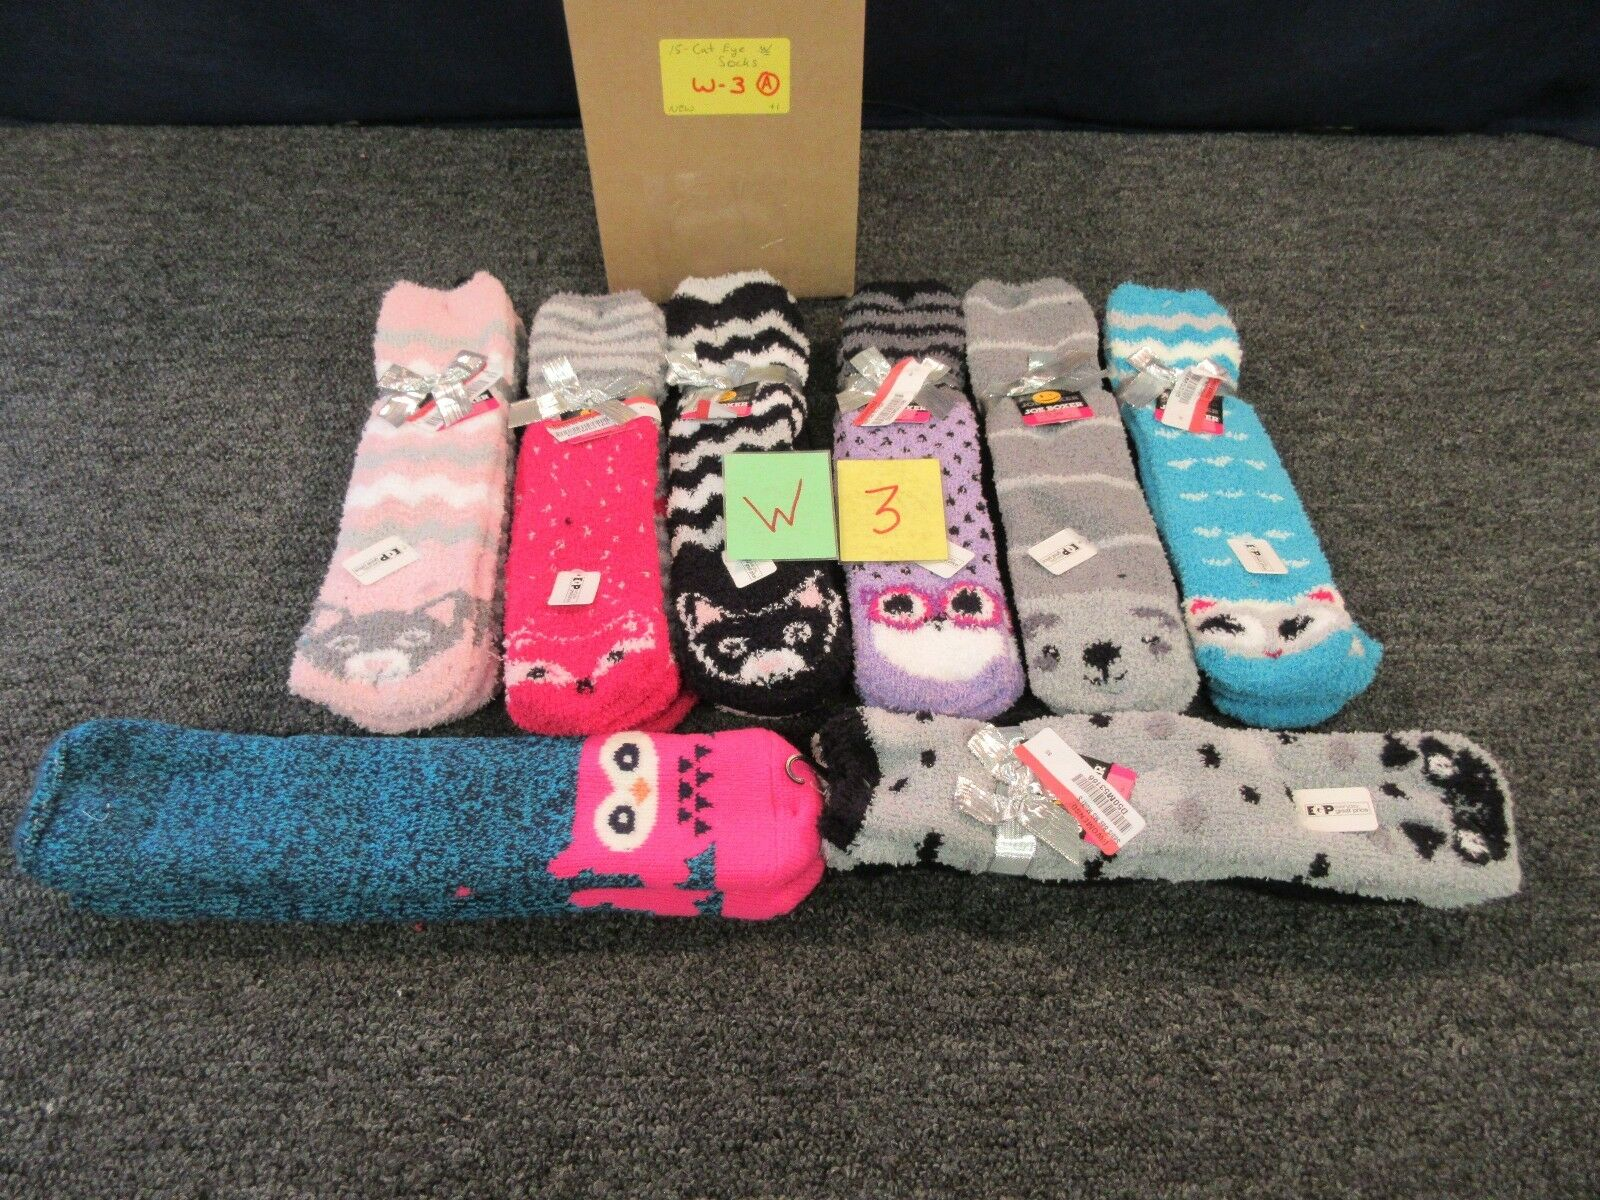 15 JOE BOXER WOMEN SOCKS SLIPPERS ANIMAL COZY CLOTHING 4-10 WINTER COLD BULK LOT